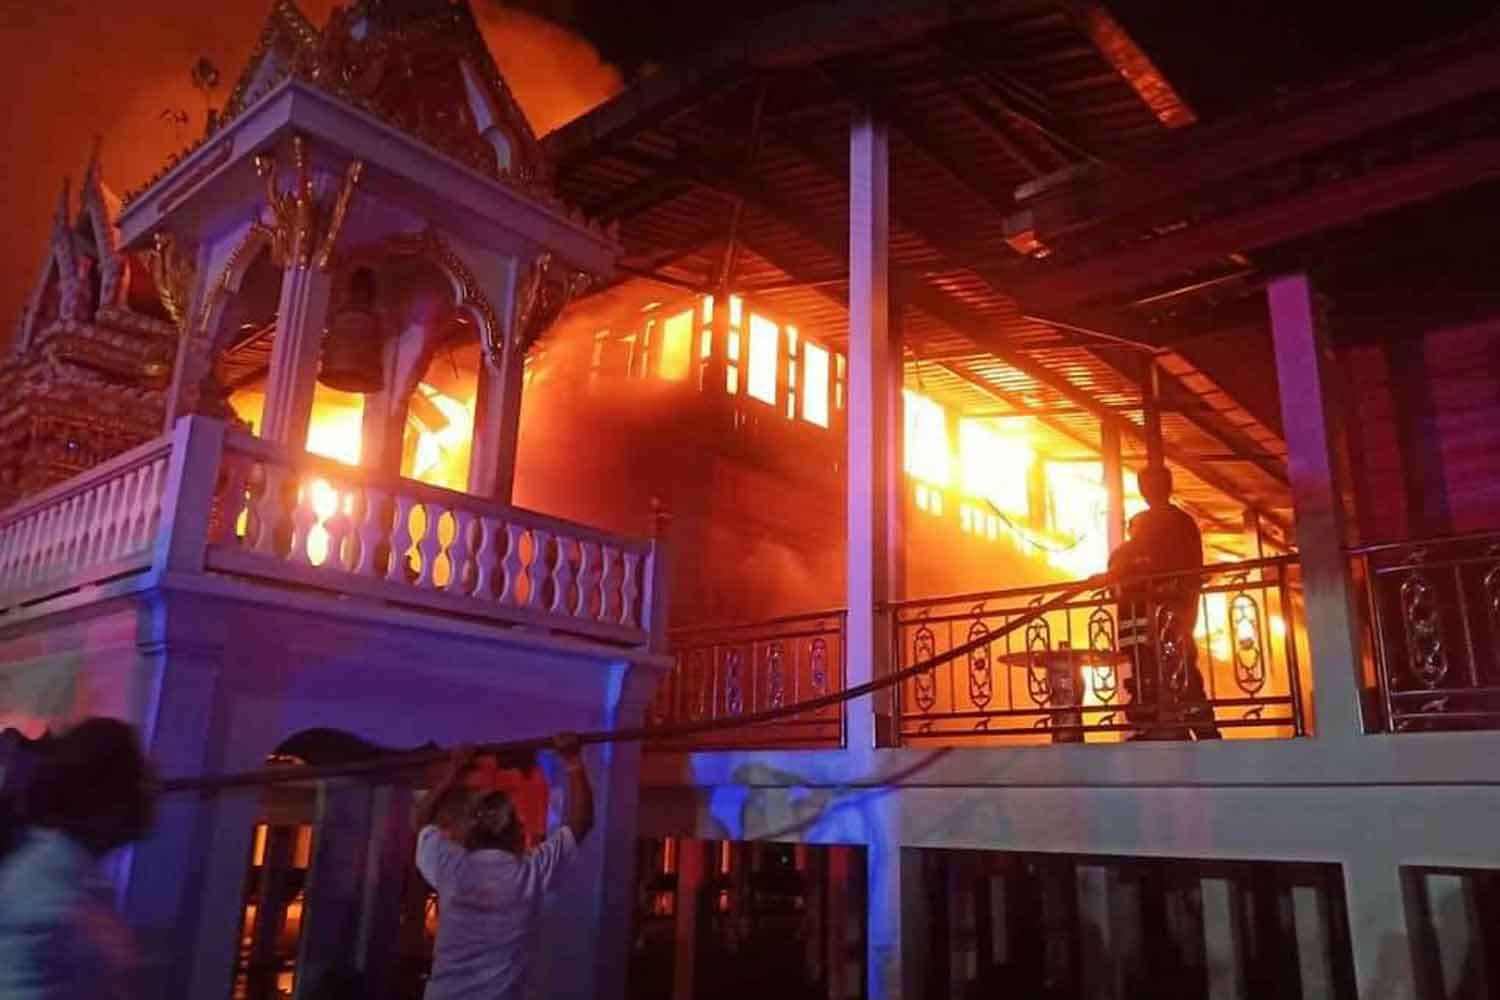 Fire destroys the teak pavilion at Wat Chang Thong in Phra Nakhon Si Ayutthaya district of Ayutthaya on Wednesday night. (Photo: Sunthon Pongpao)